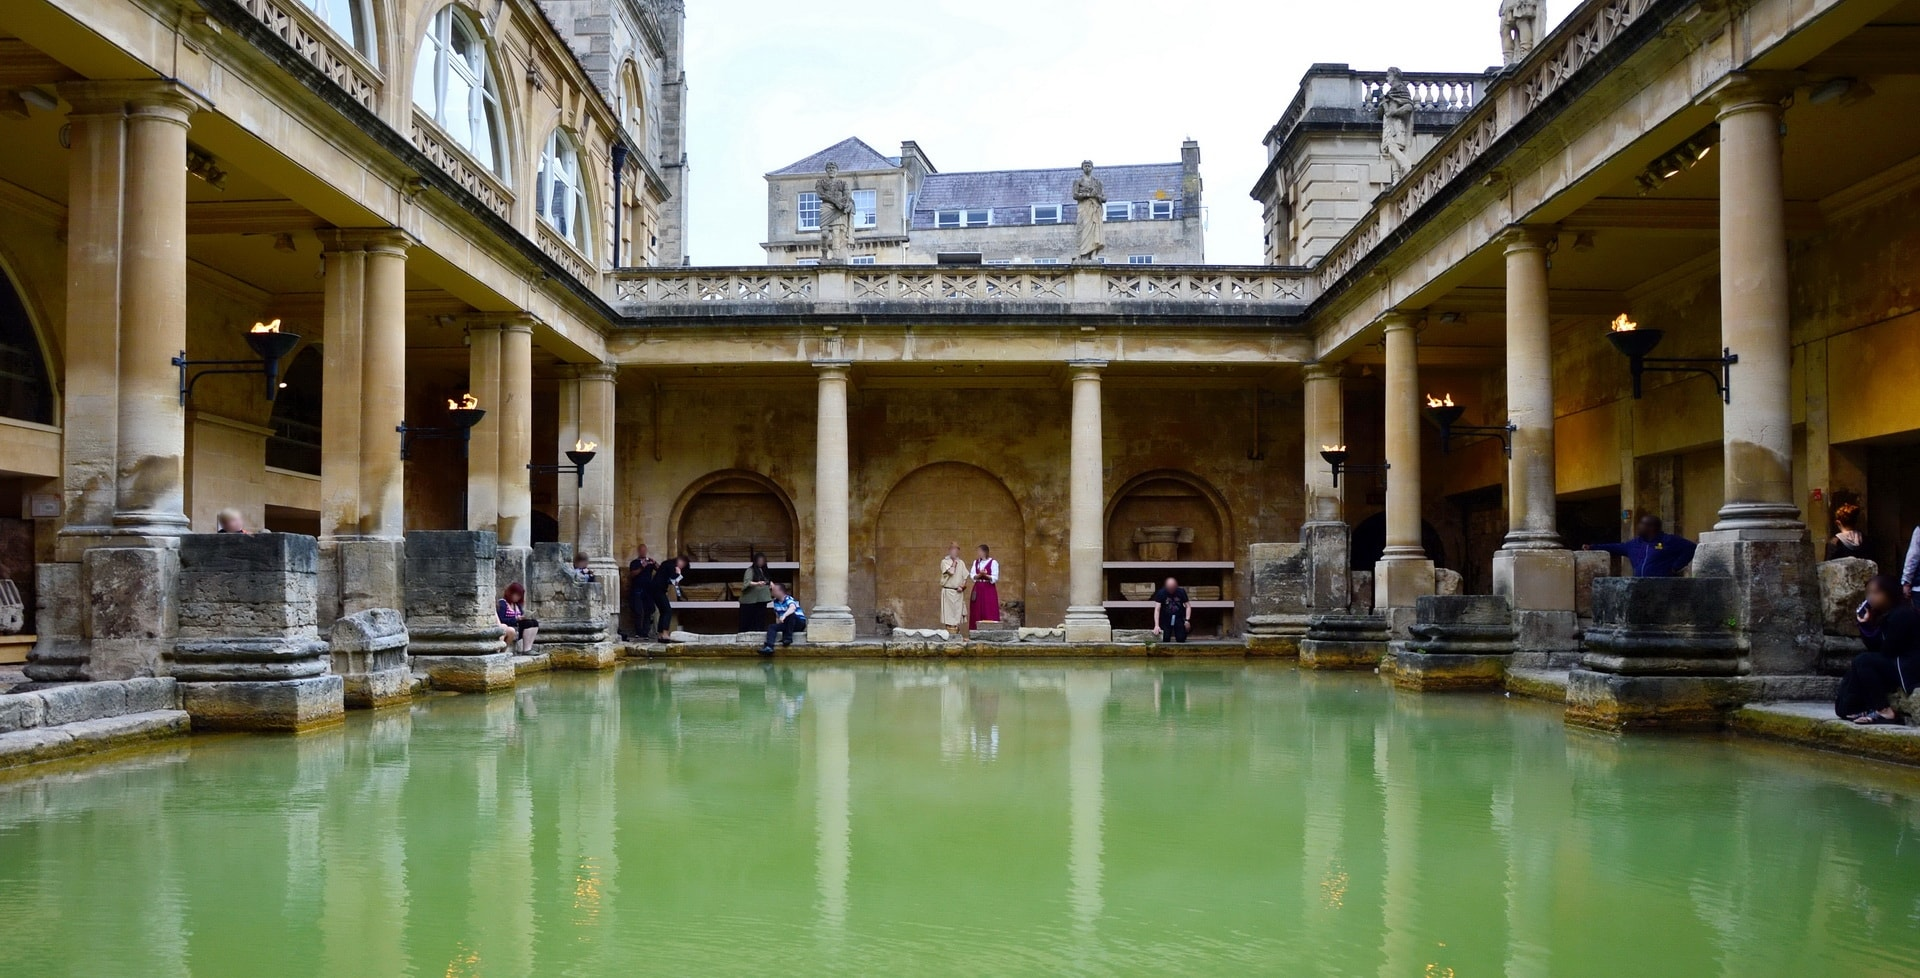 The main part of The Roman Baths